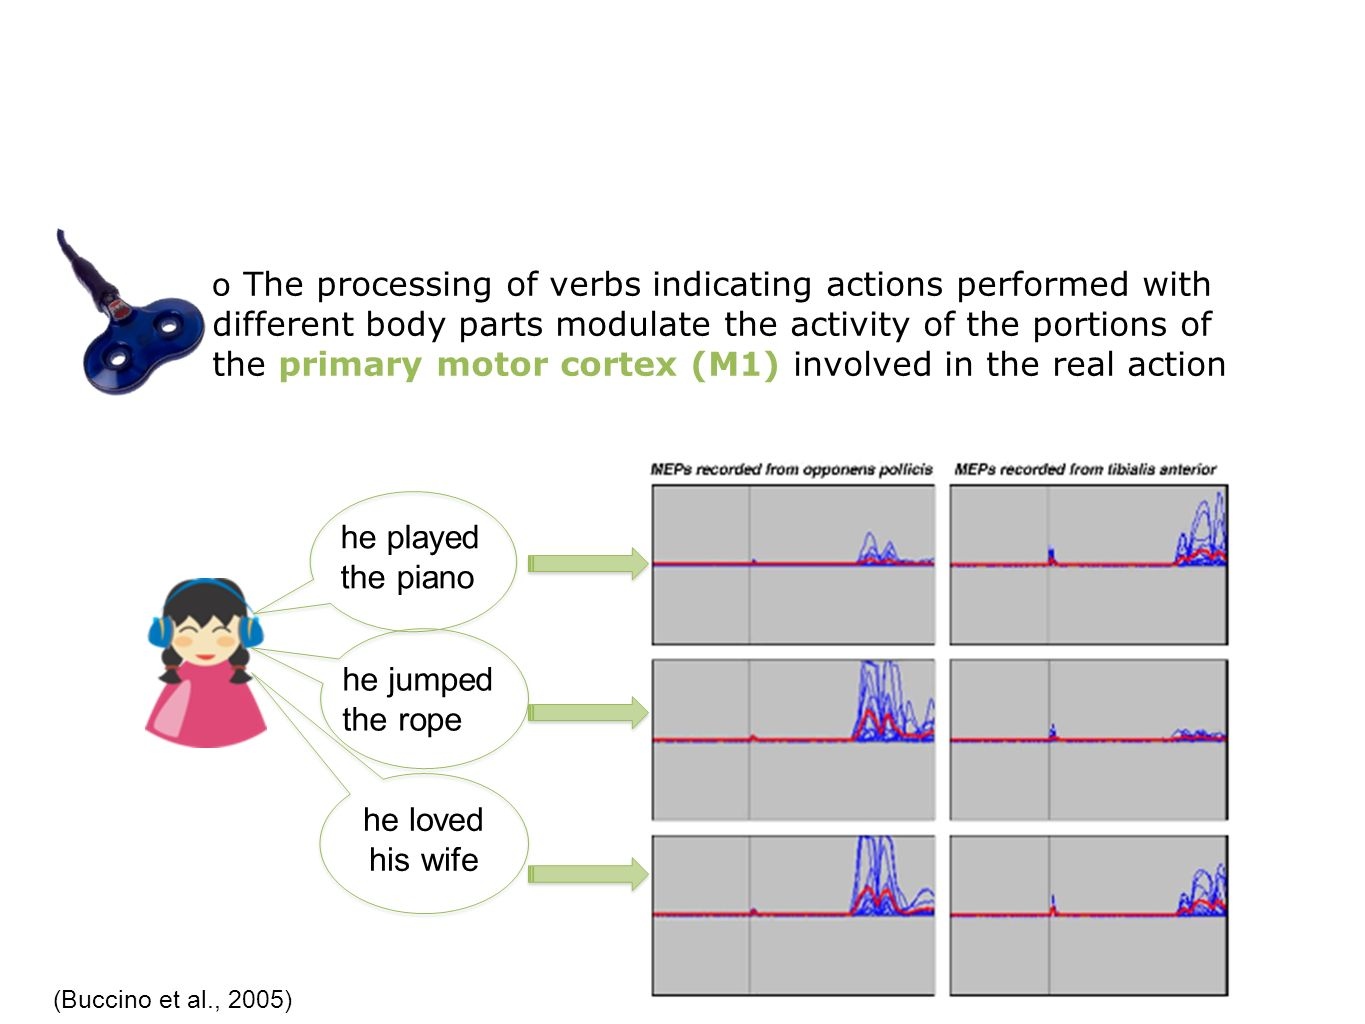 o The processing of verbs indicating actions performed with different body parts modulate the activity of the portions of the primary motor cortex (M1) involved in the real action (Buccino et al., 2005) he played the piano he jumped the rope he loved his wife